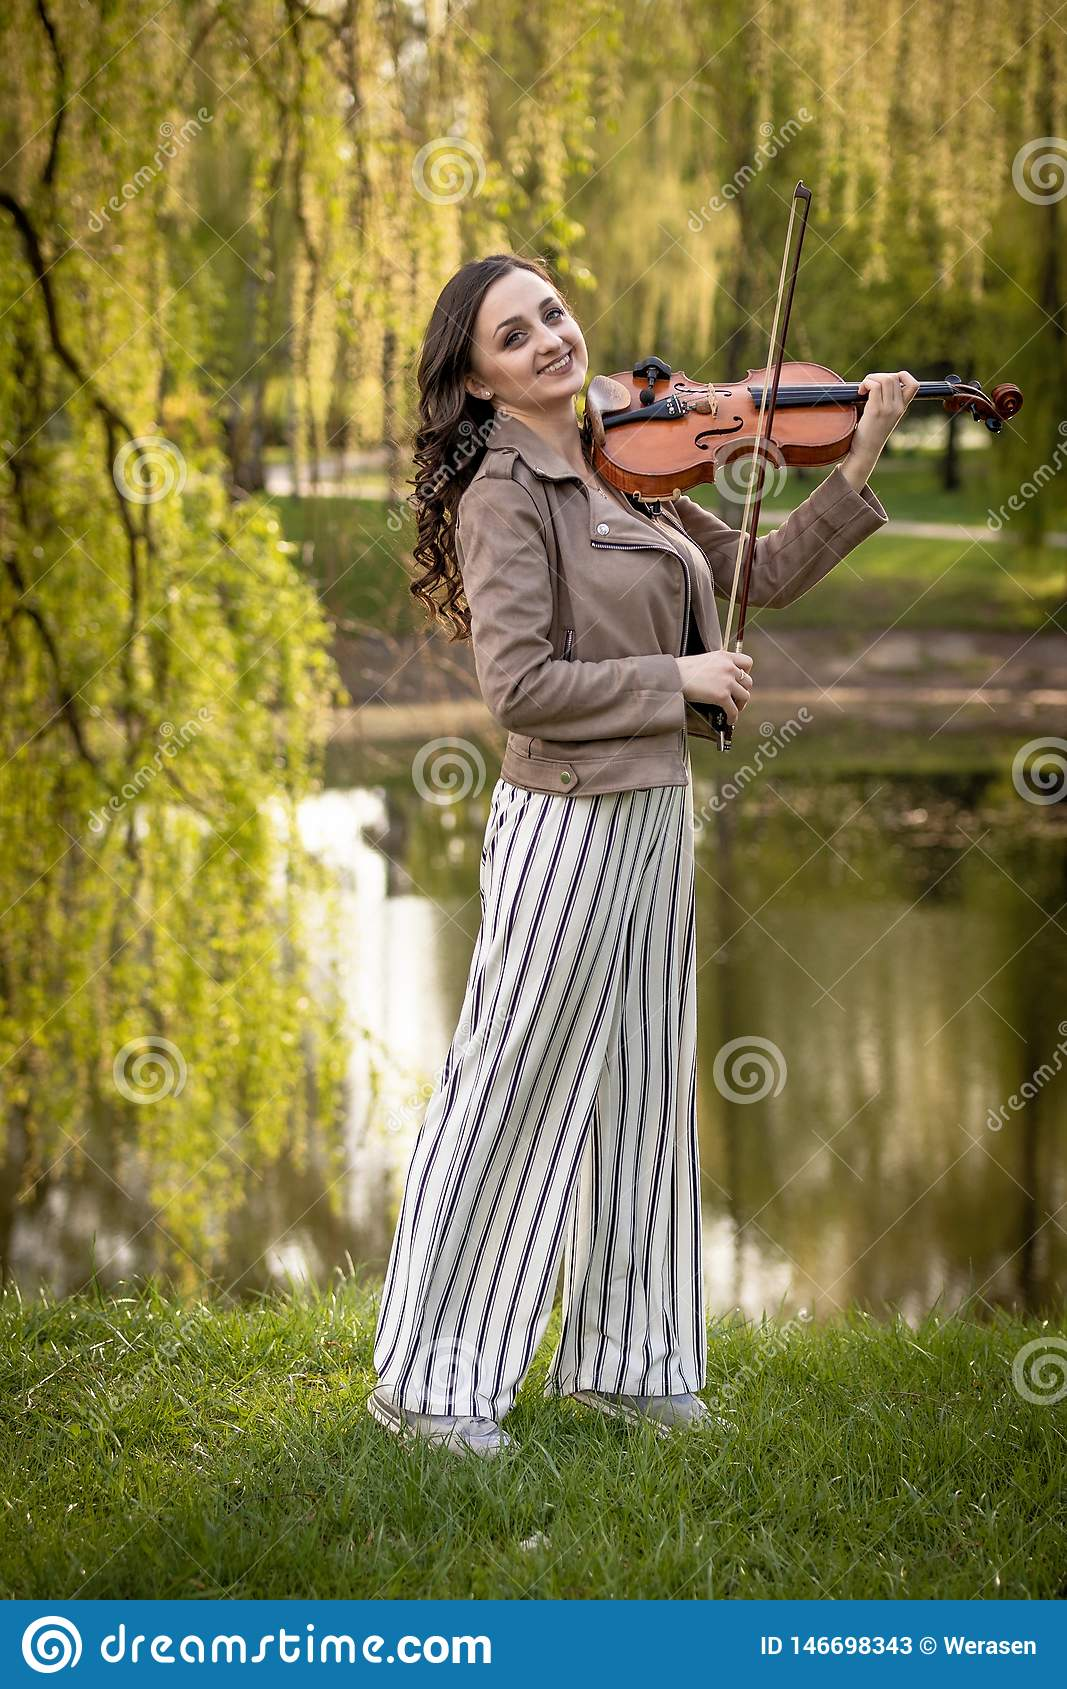 Pretty young woman playing the violin in the park and smiles, Full-length portrait